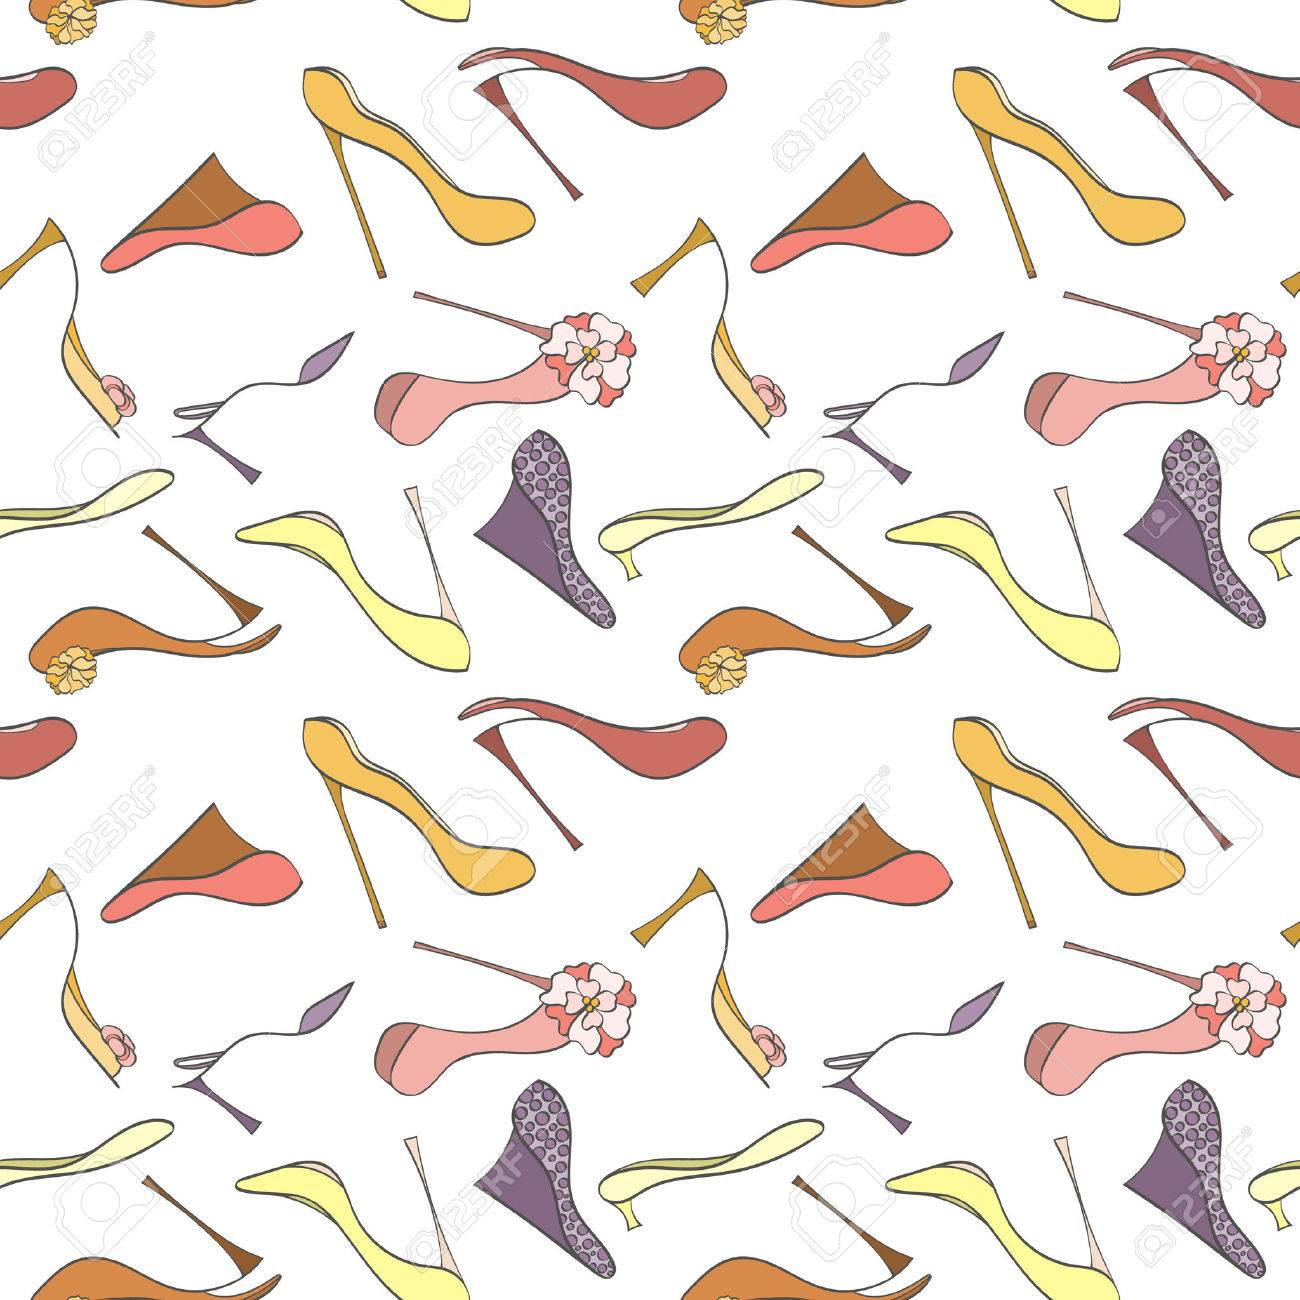 Seamless Shoes Pattern Can Be Used For Wallpaper Website Background Wrapping Paper High